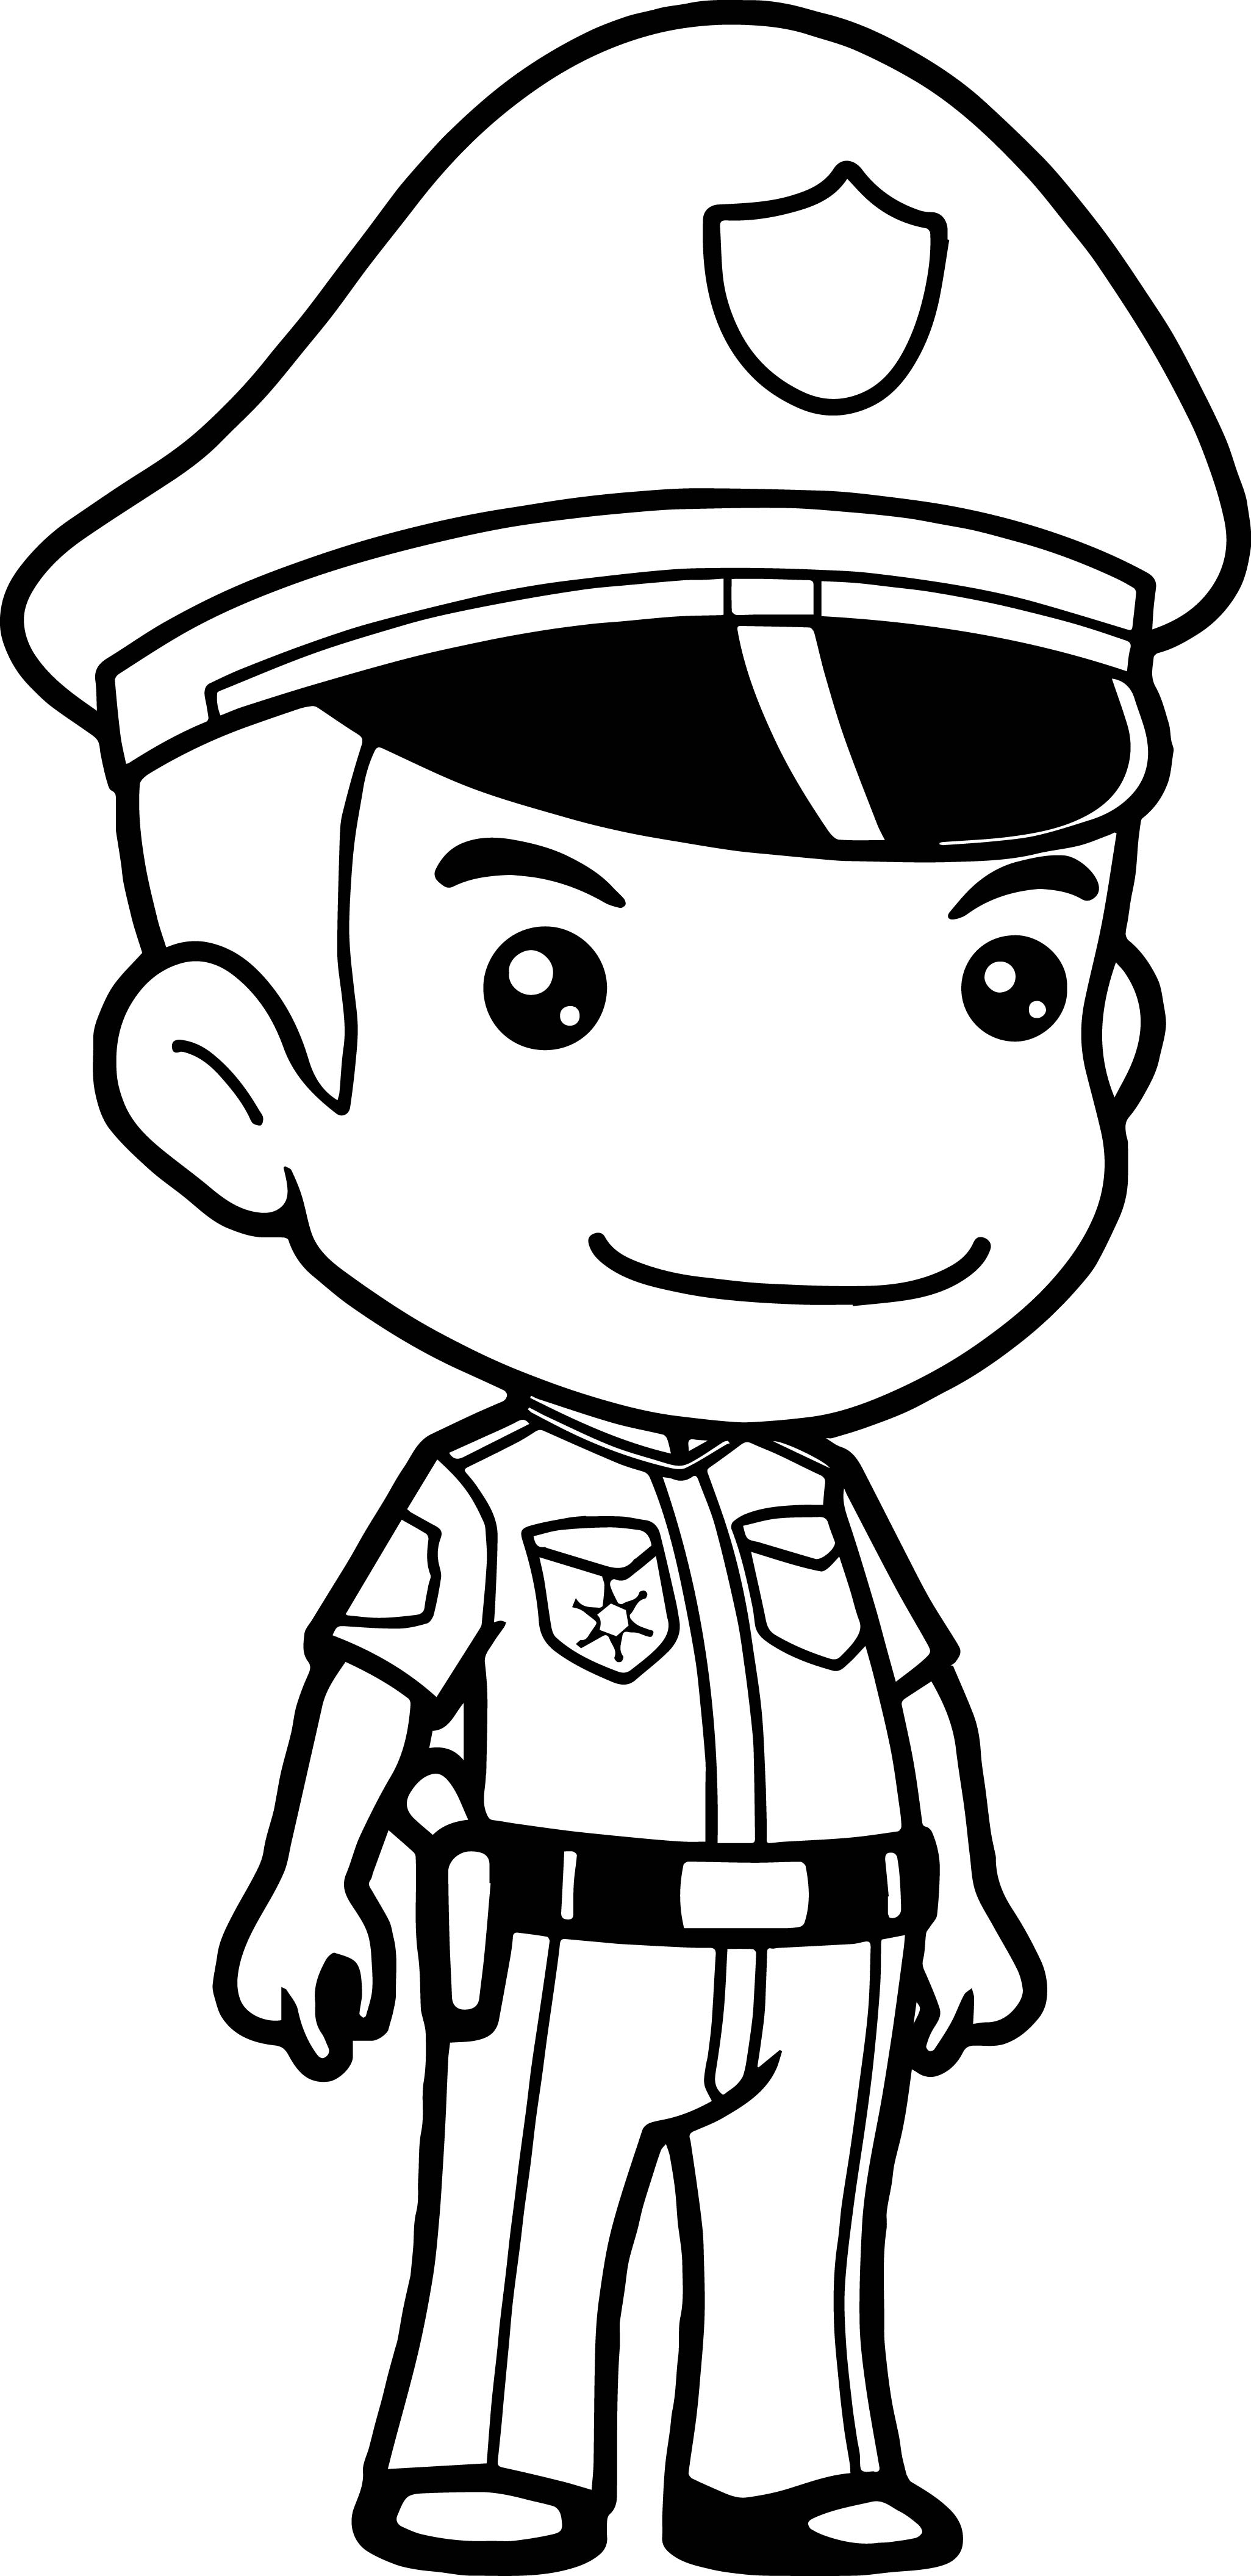 2051x4222 Unique Police Coloring Page Gallery Printable Coloring Sheet